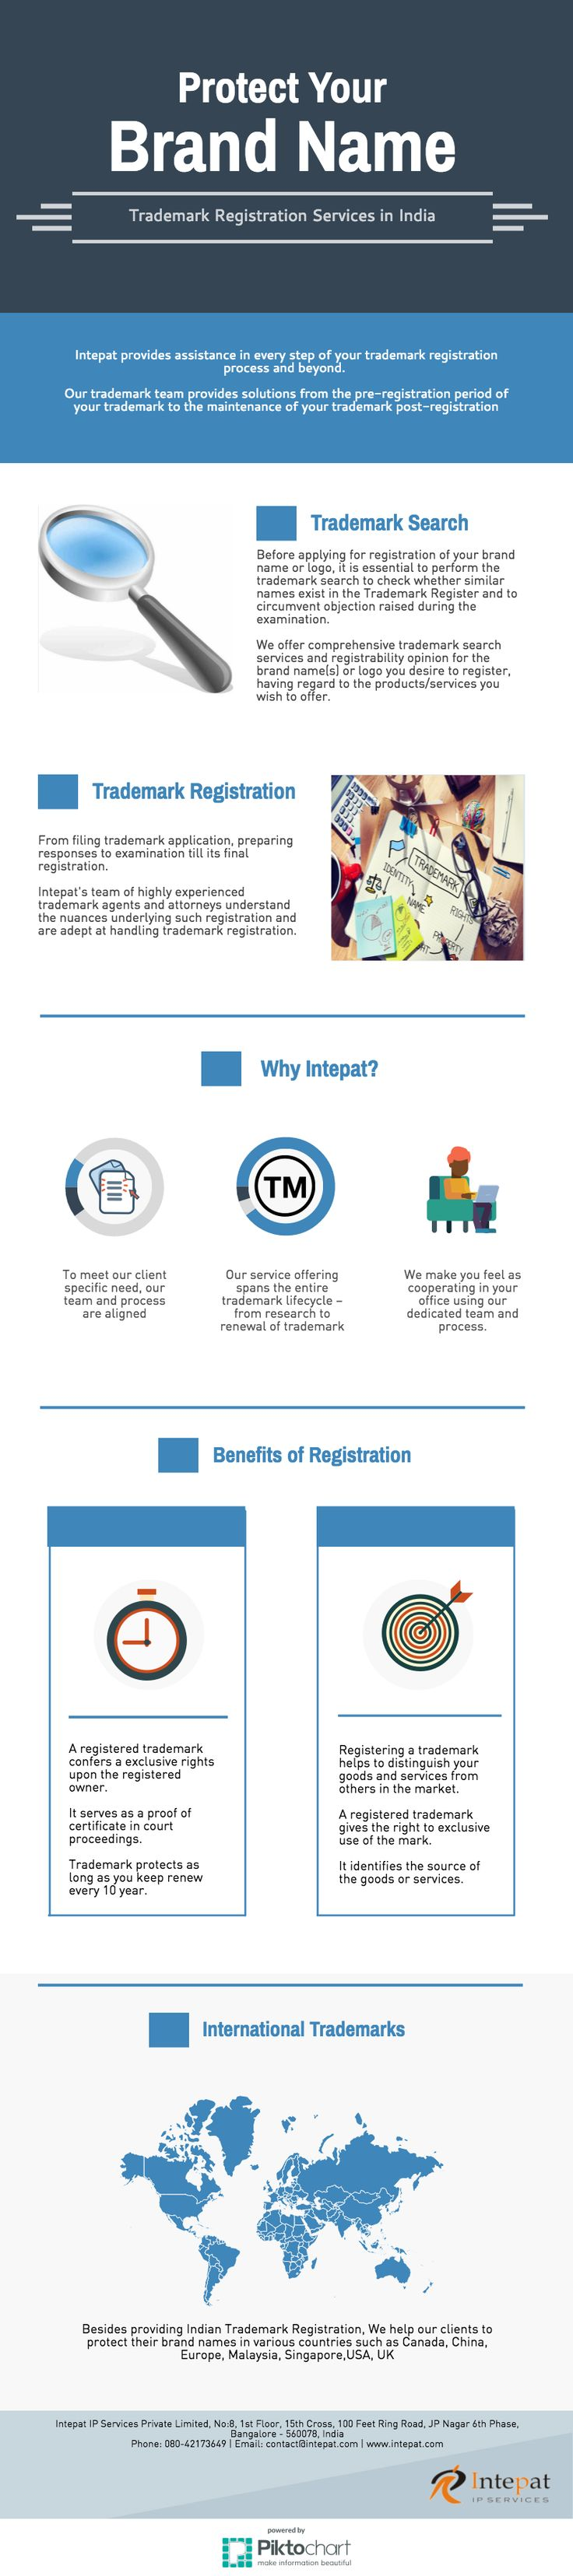 File Your #Trademark Registration in #India